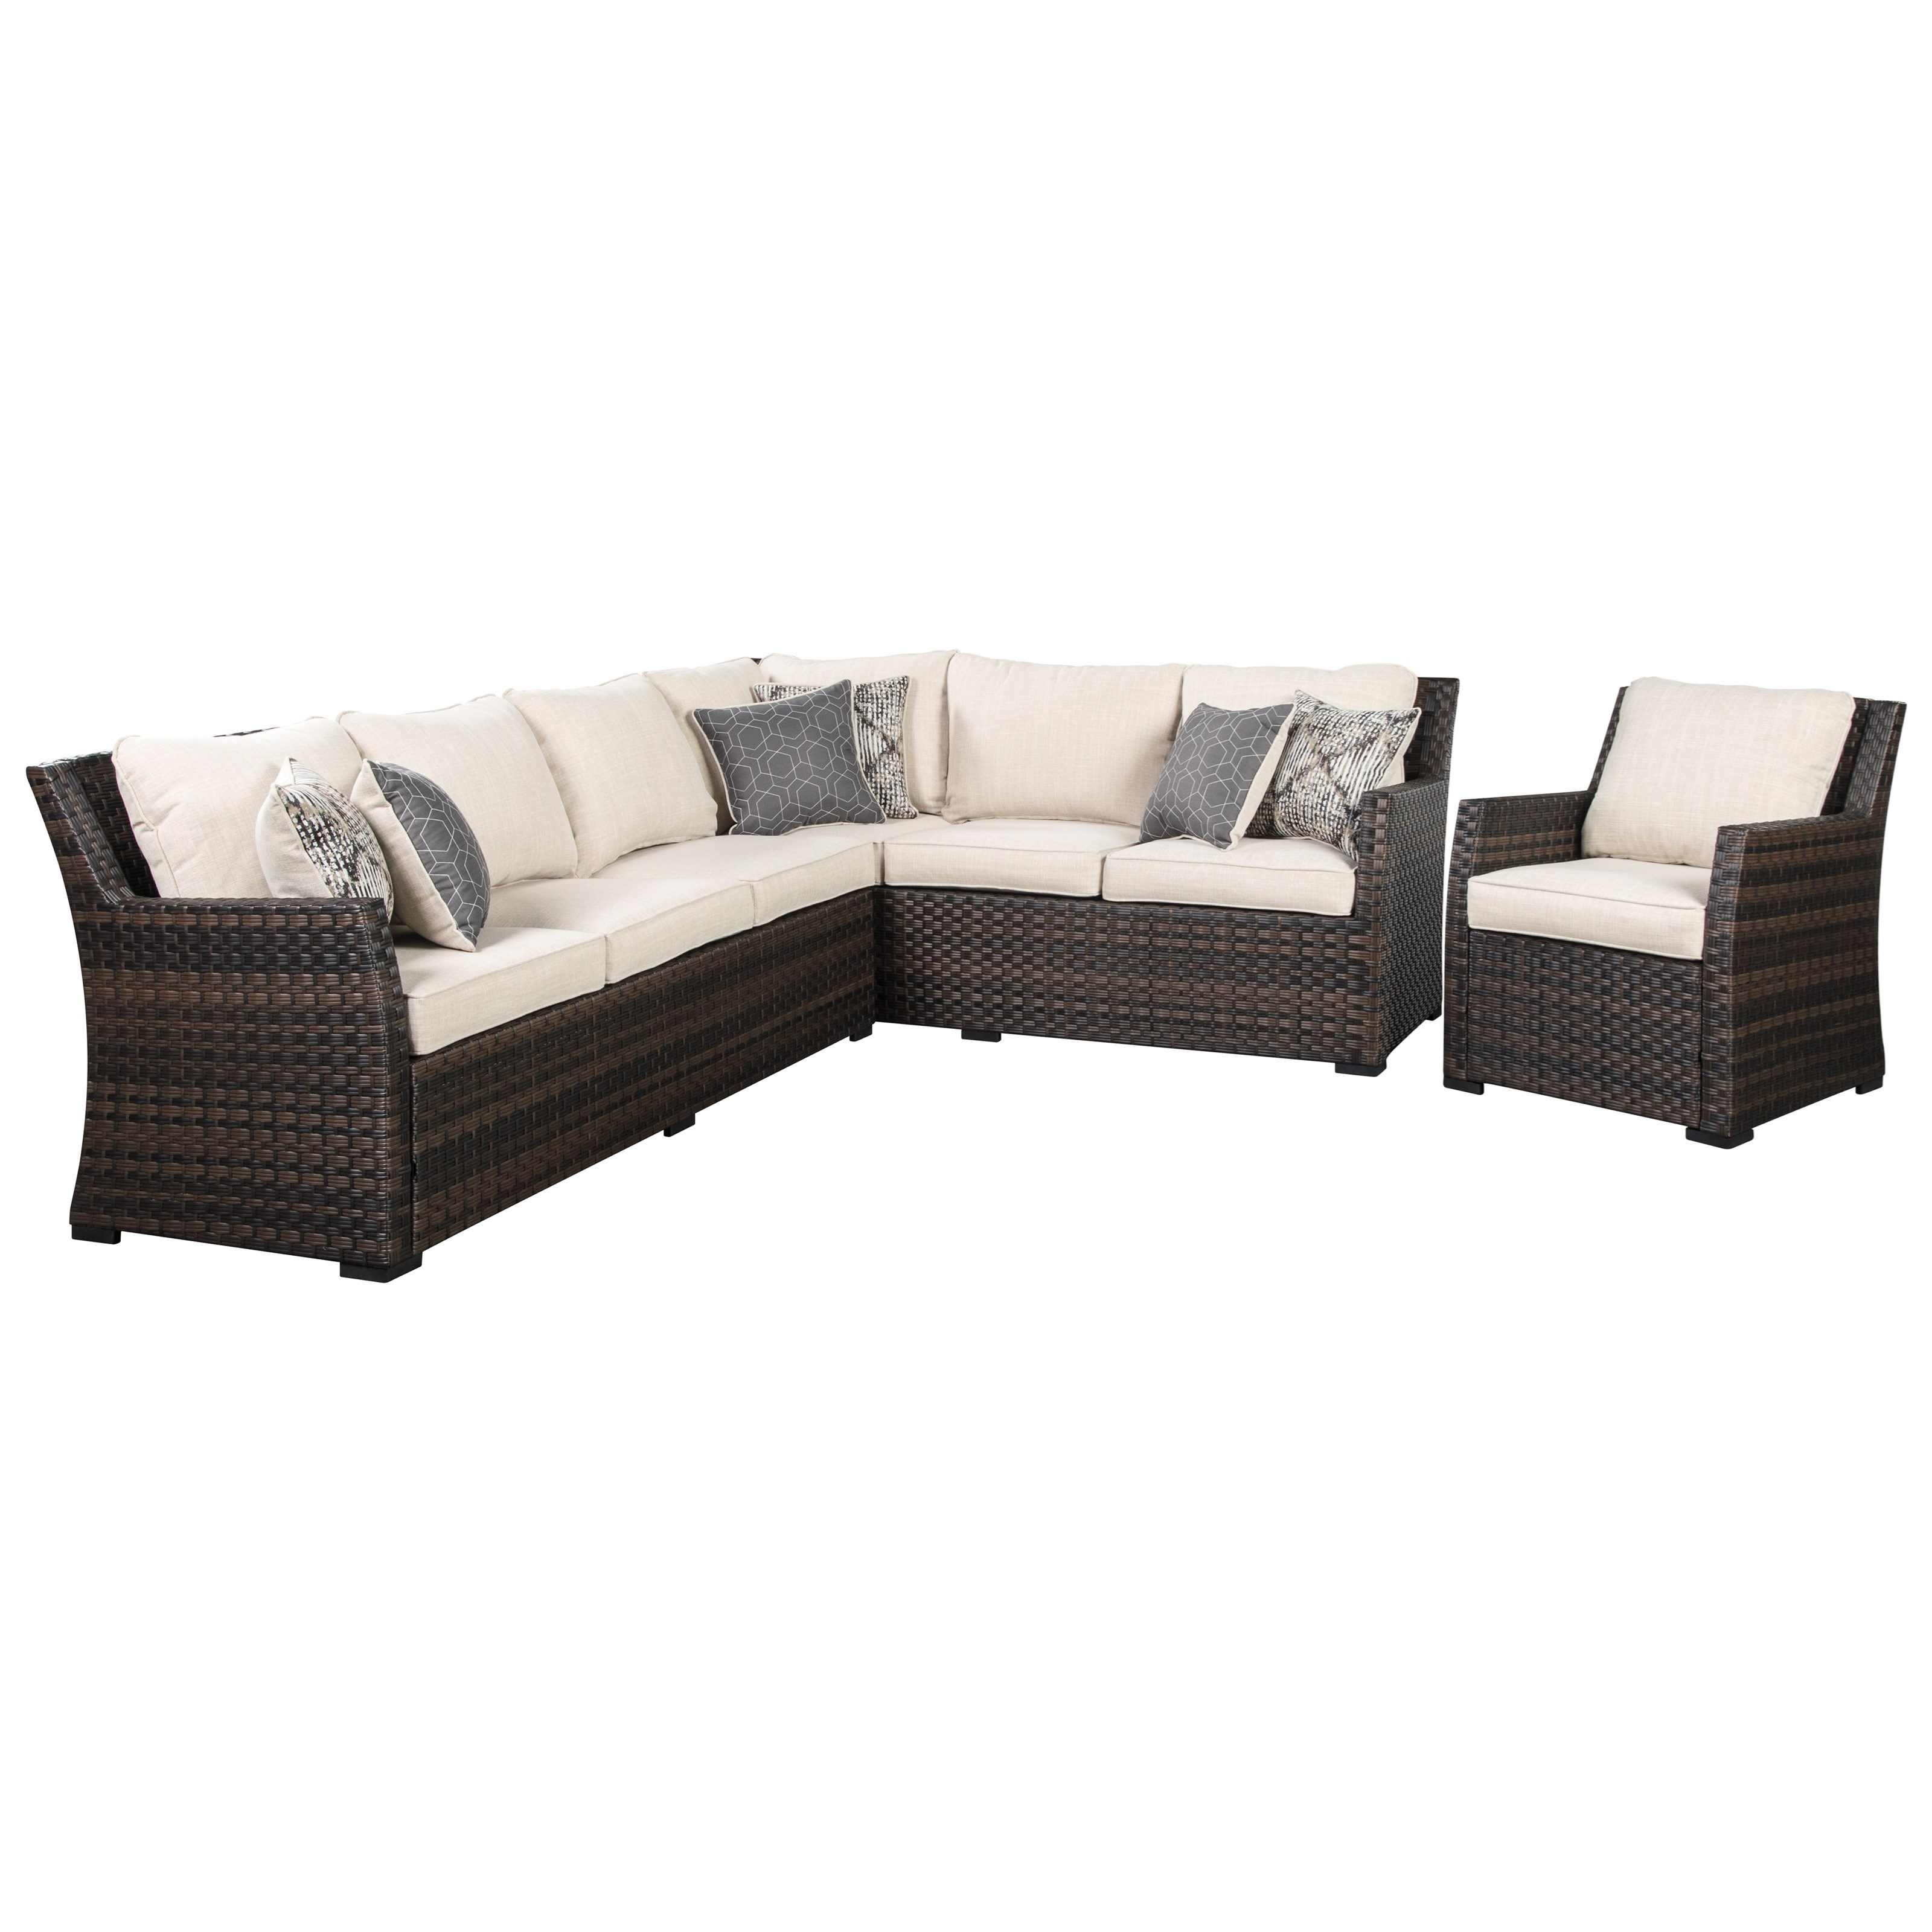 Easy Isle Outdoor 2-Piece Sectional & Lounge Chair Set by Signature Design by Ashley at Beck's Furniture